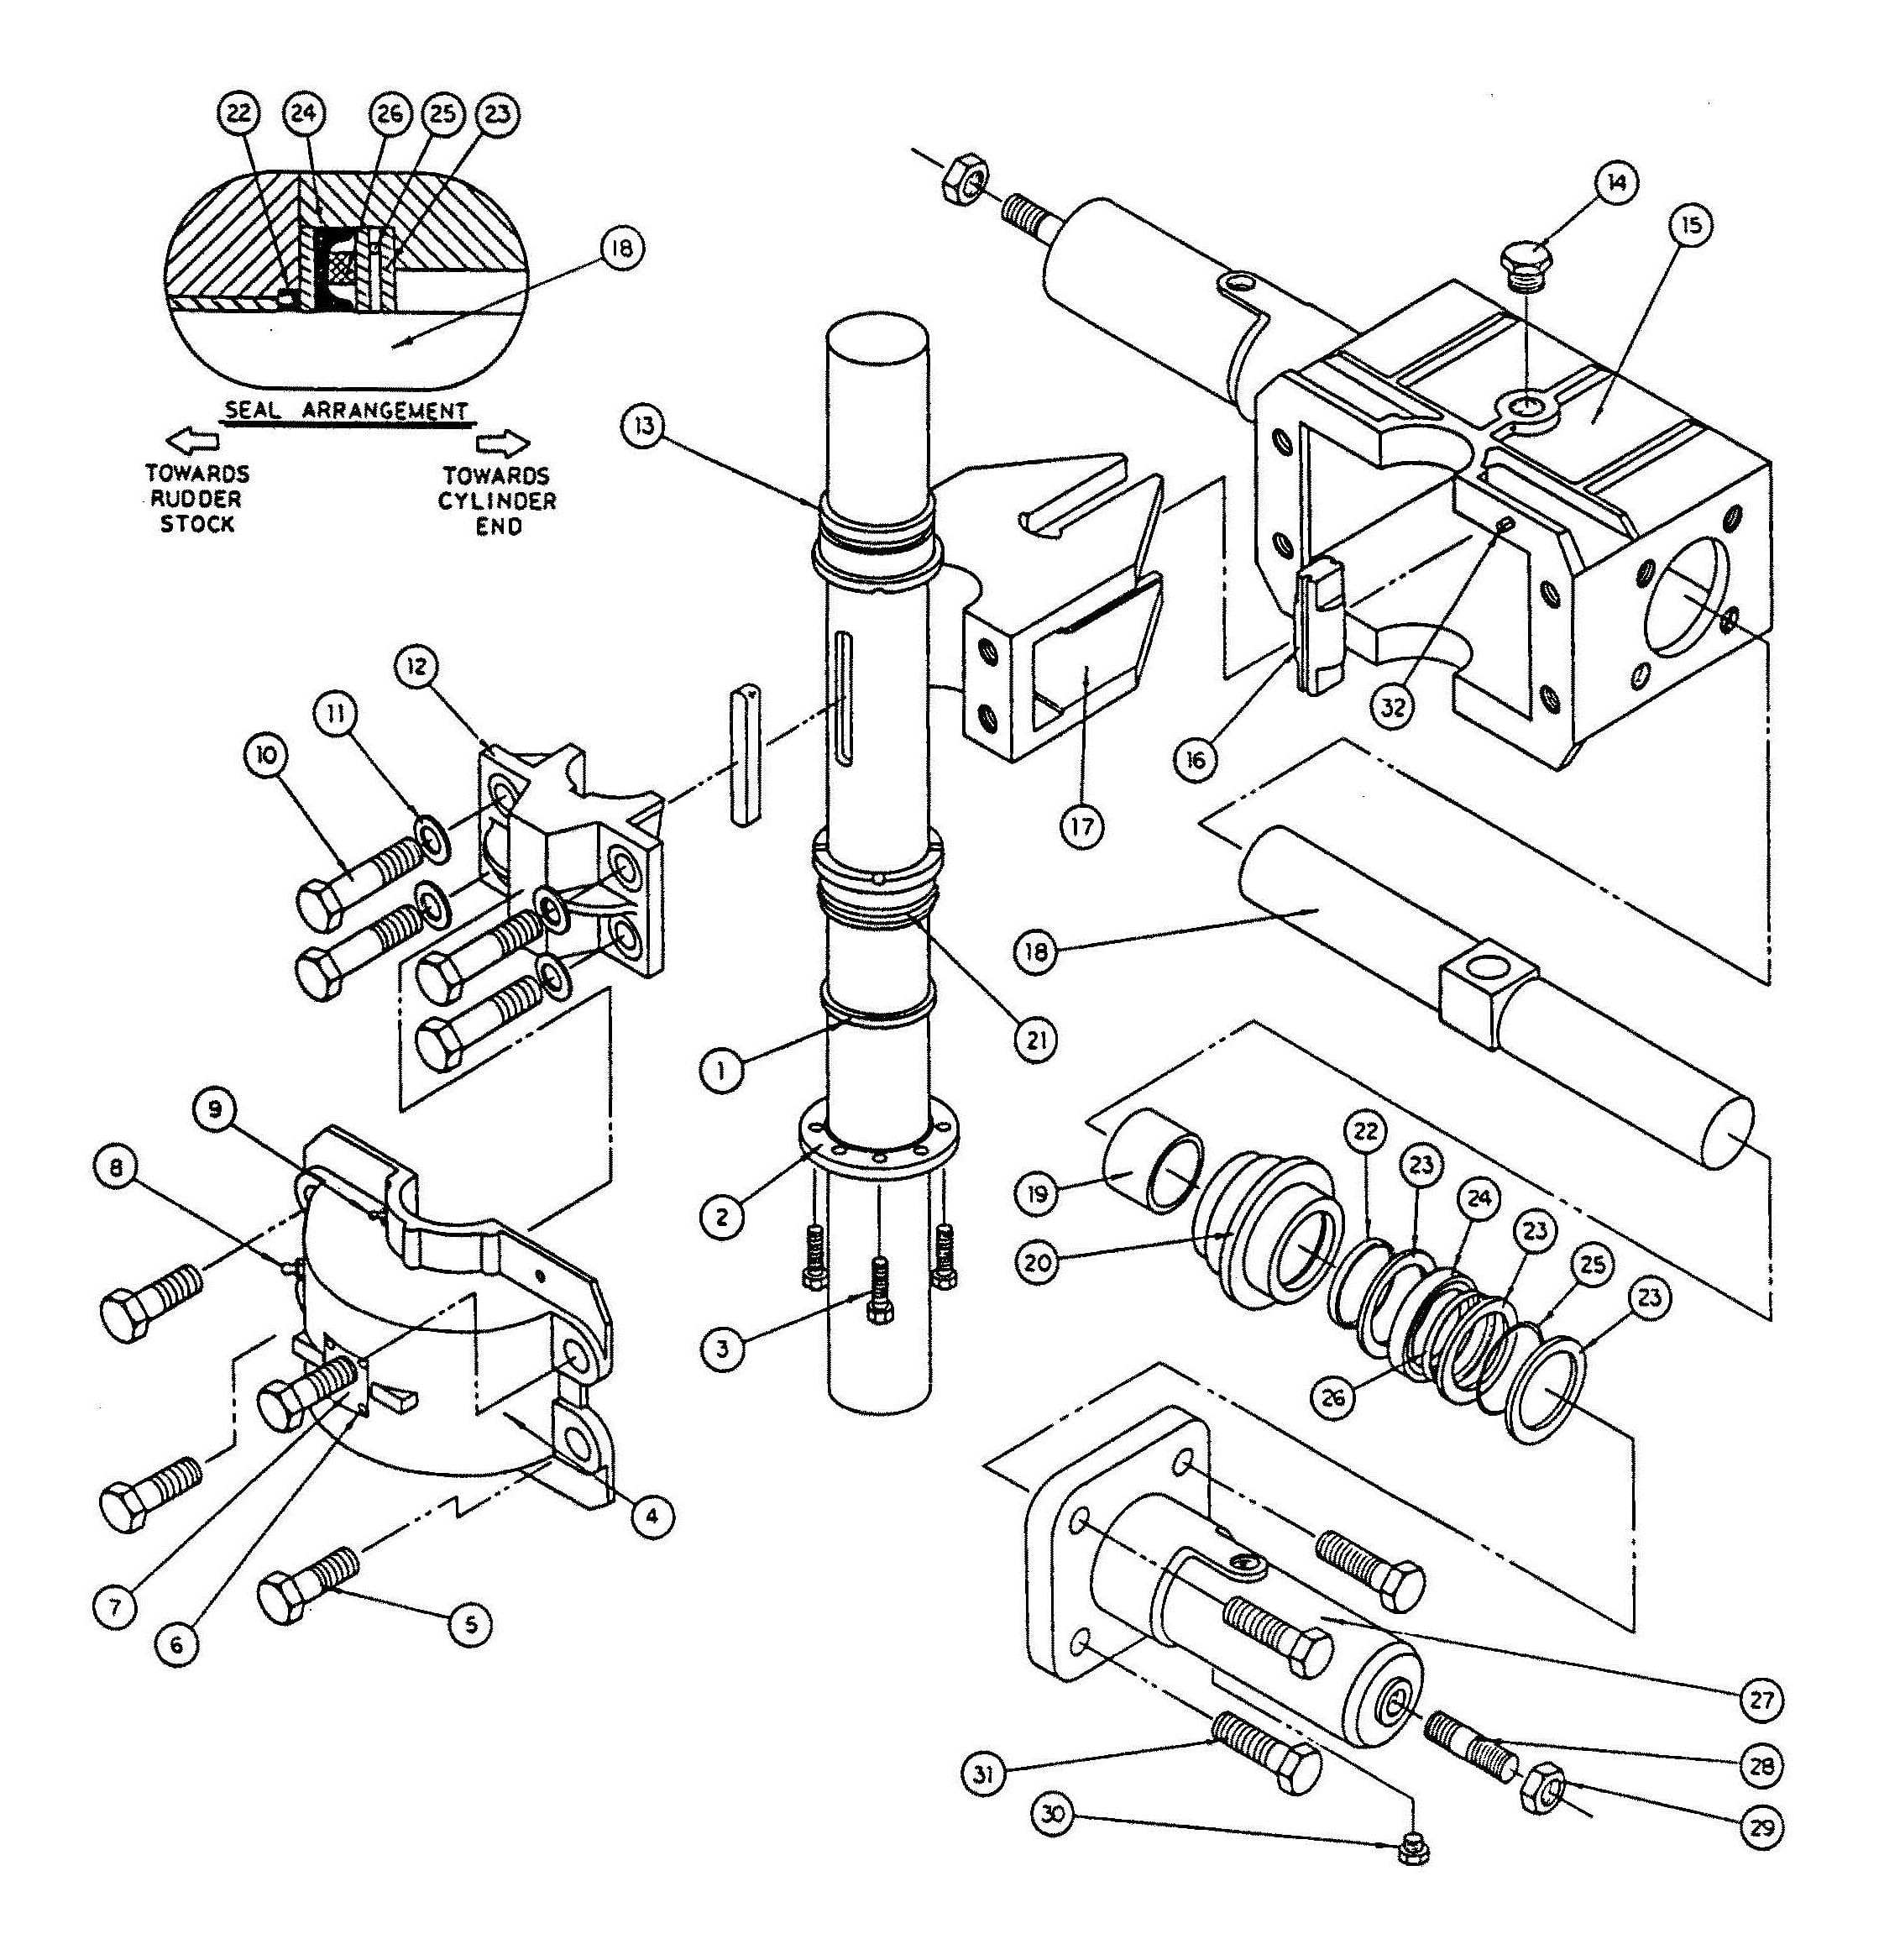 Model T14 and T15 Actuator Assembly Diagram